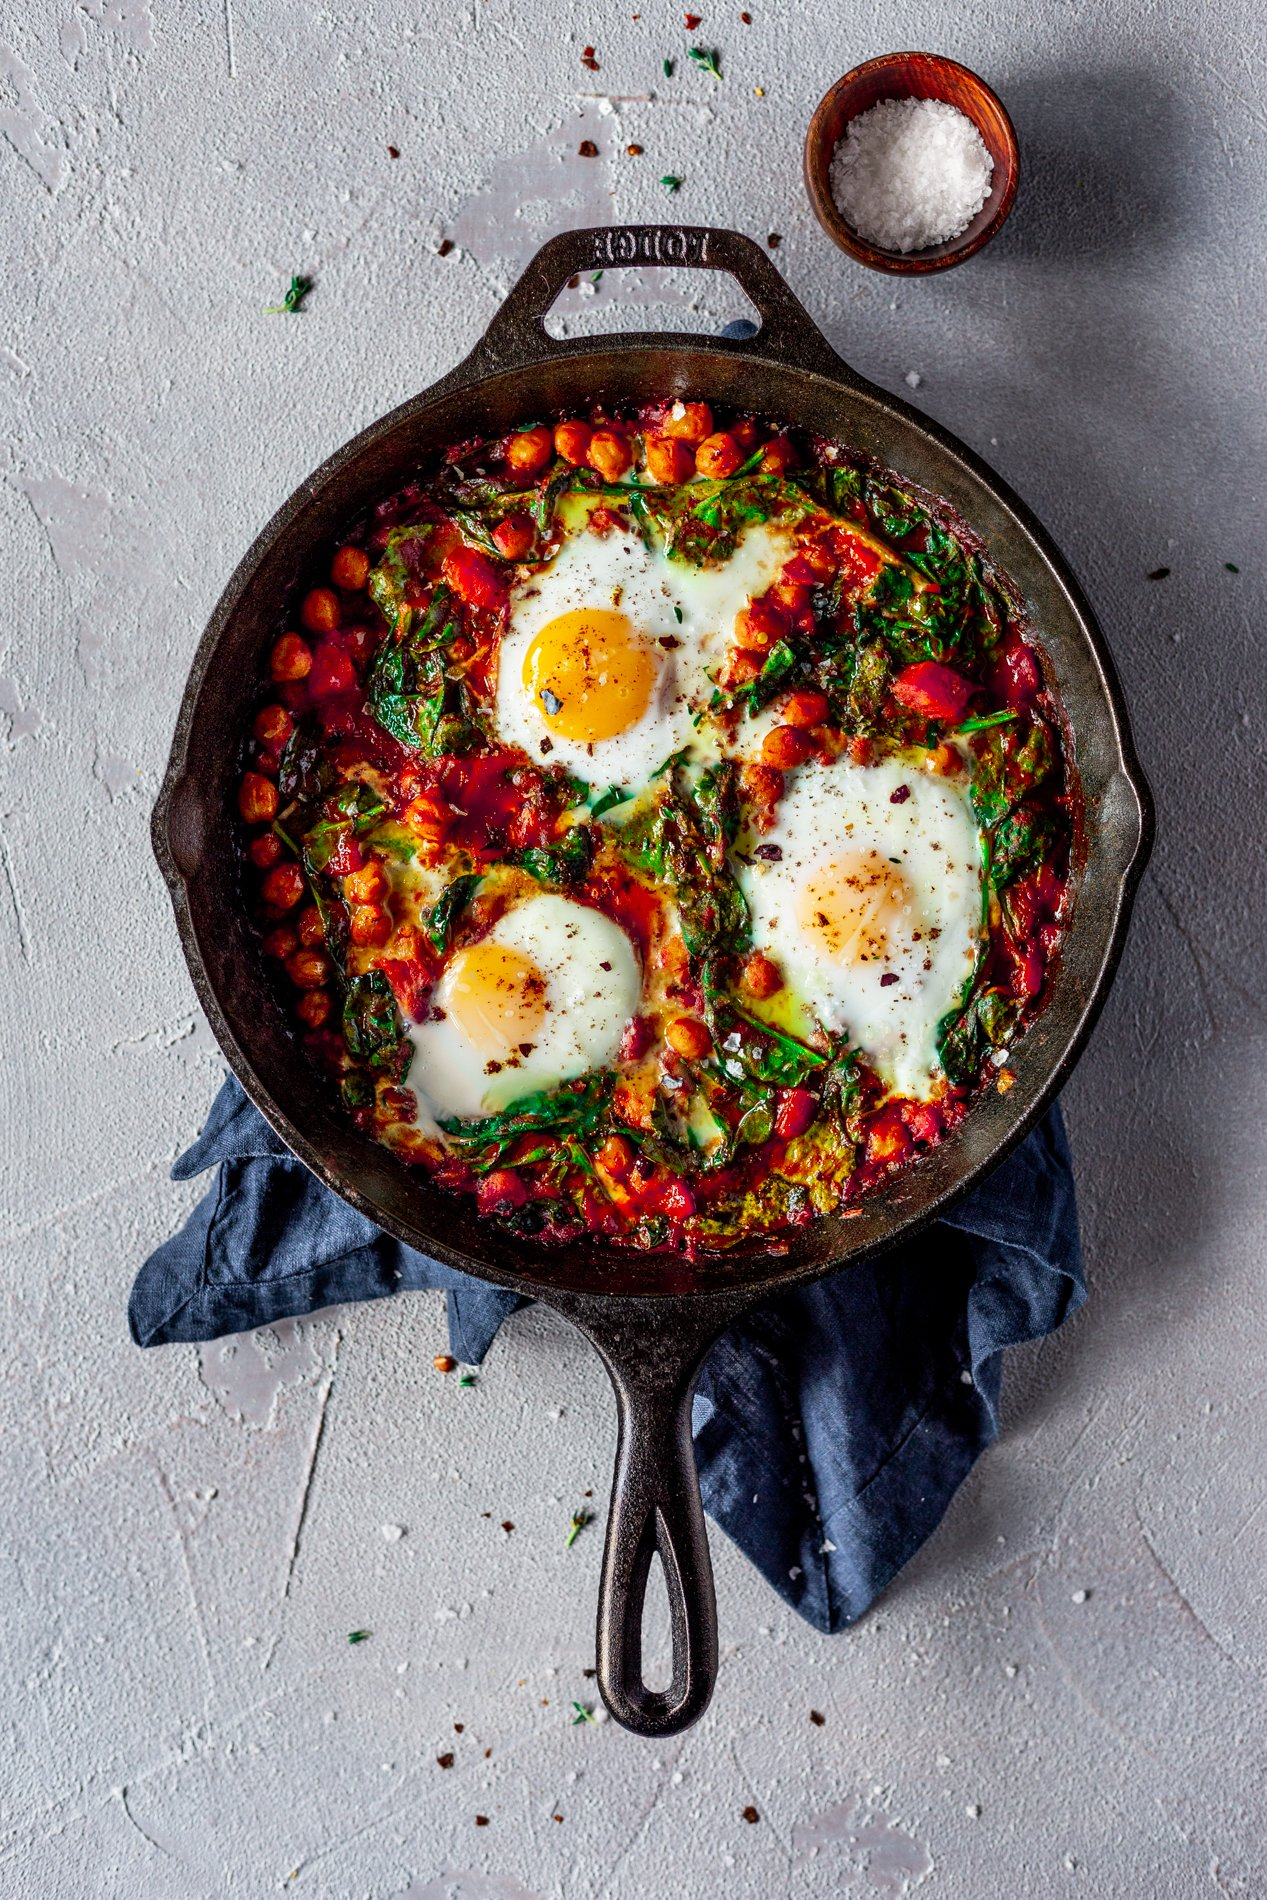 overhead view of a cast iron skillet with harissa baked eggs with chickpeas, spinach, and sumac, with a blue napkin under the skillet and a small dish of flaked salt